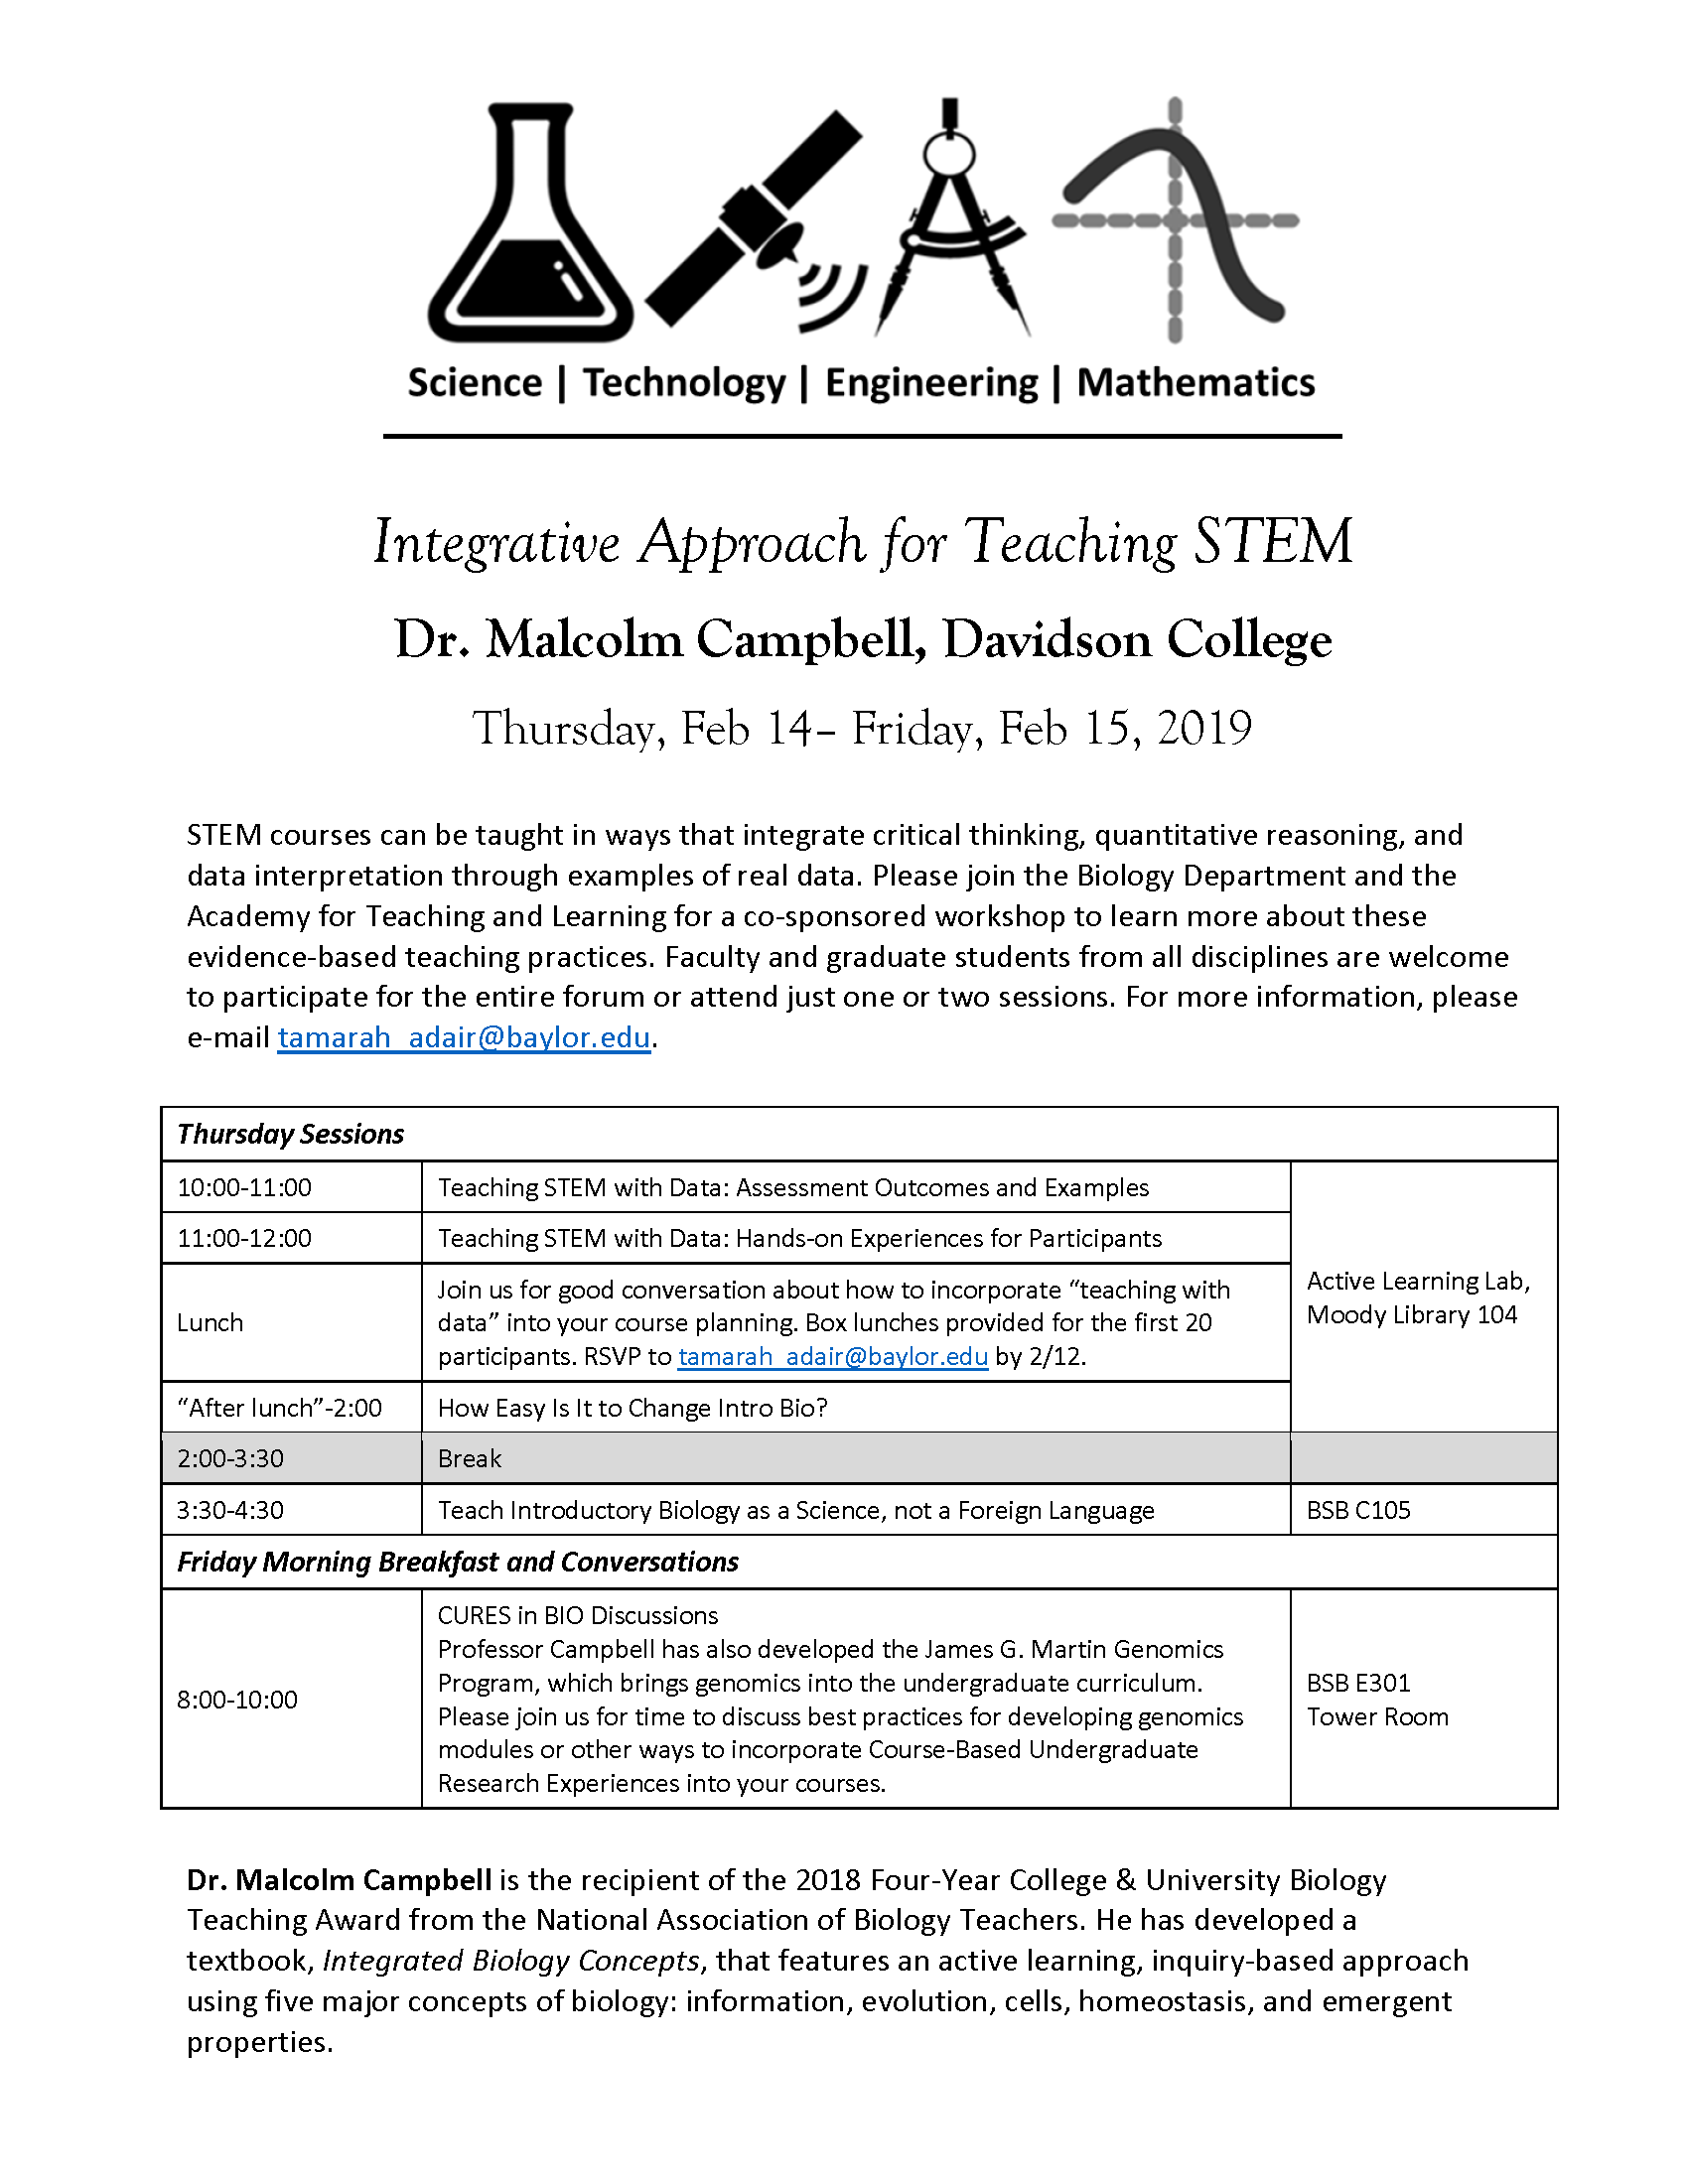 Flyer-Integrative teaching of STEM with Malcolm Campbell 2019-02-14